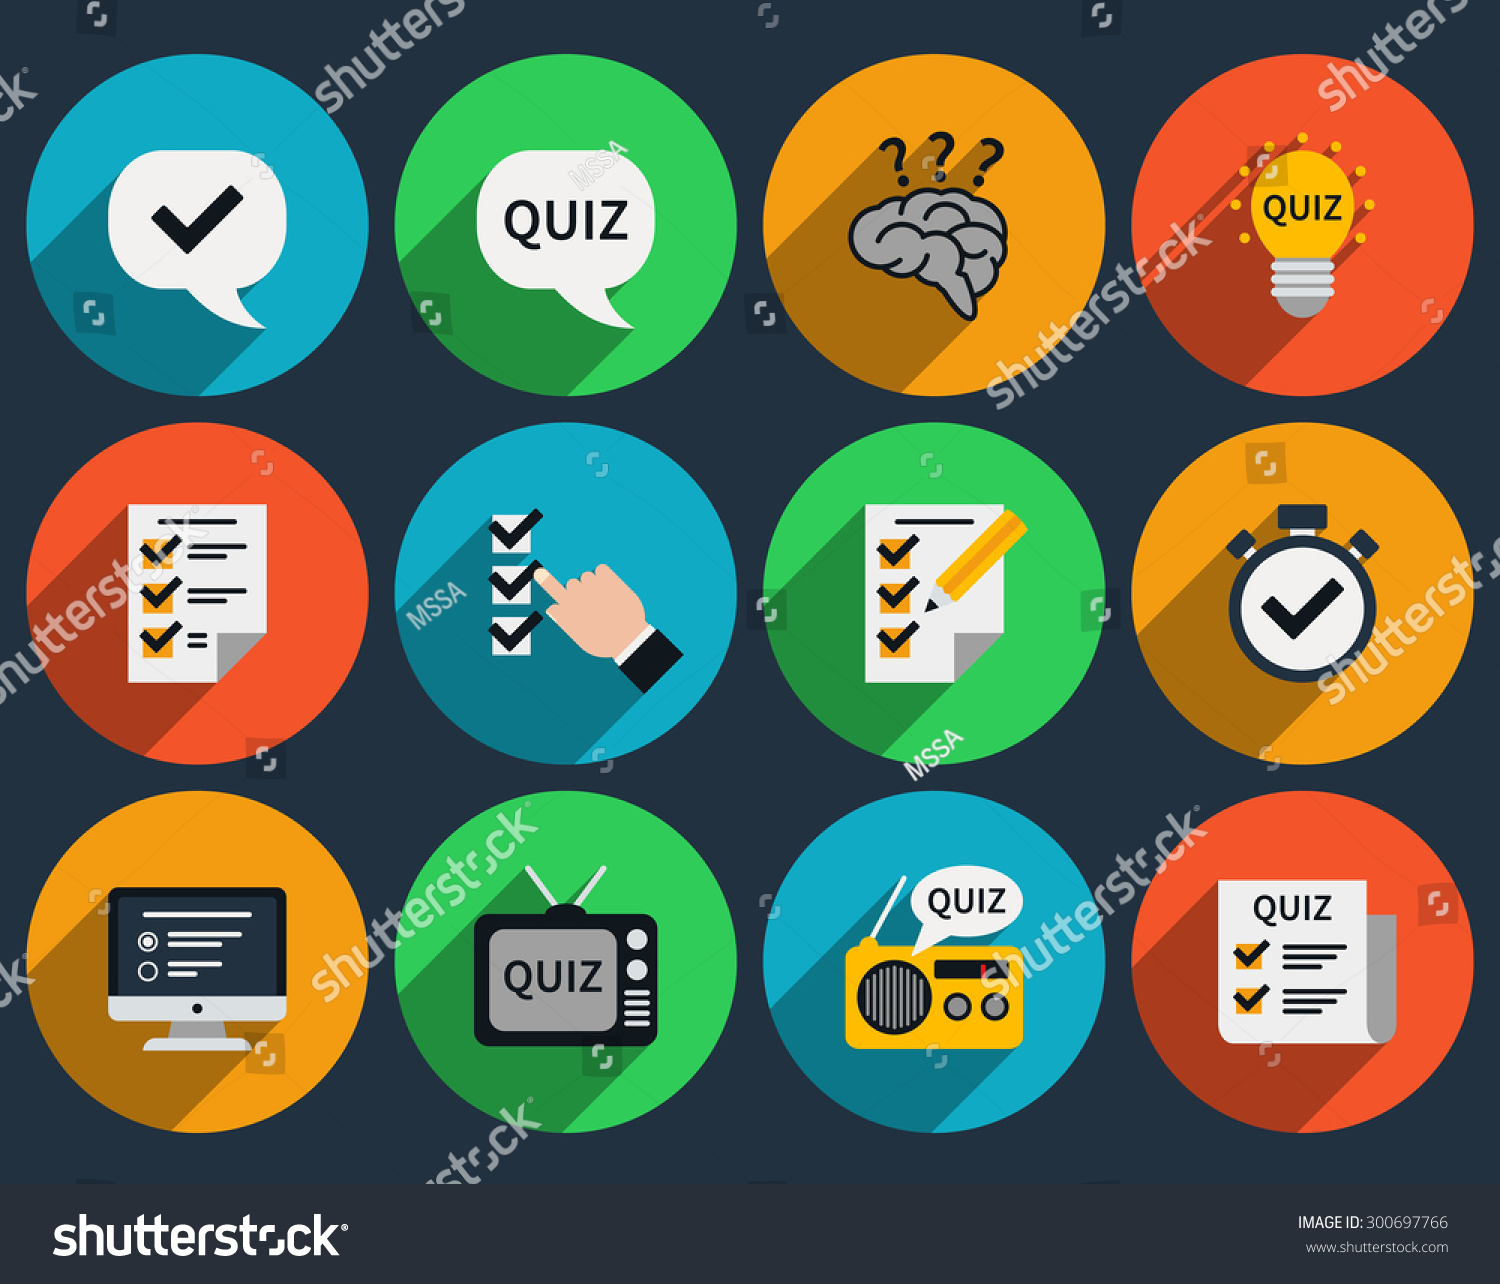 Quizzes - Mind Games And Quizzes Flat Icons Question And Answer Questionnaire And Sign Symbol